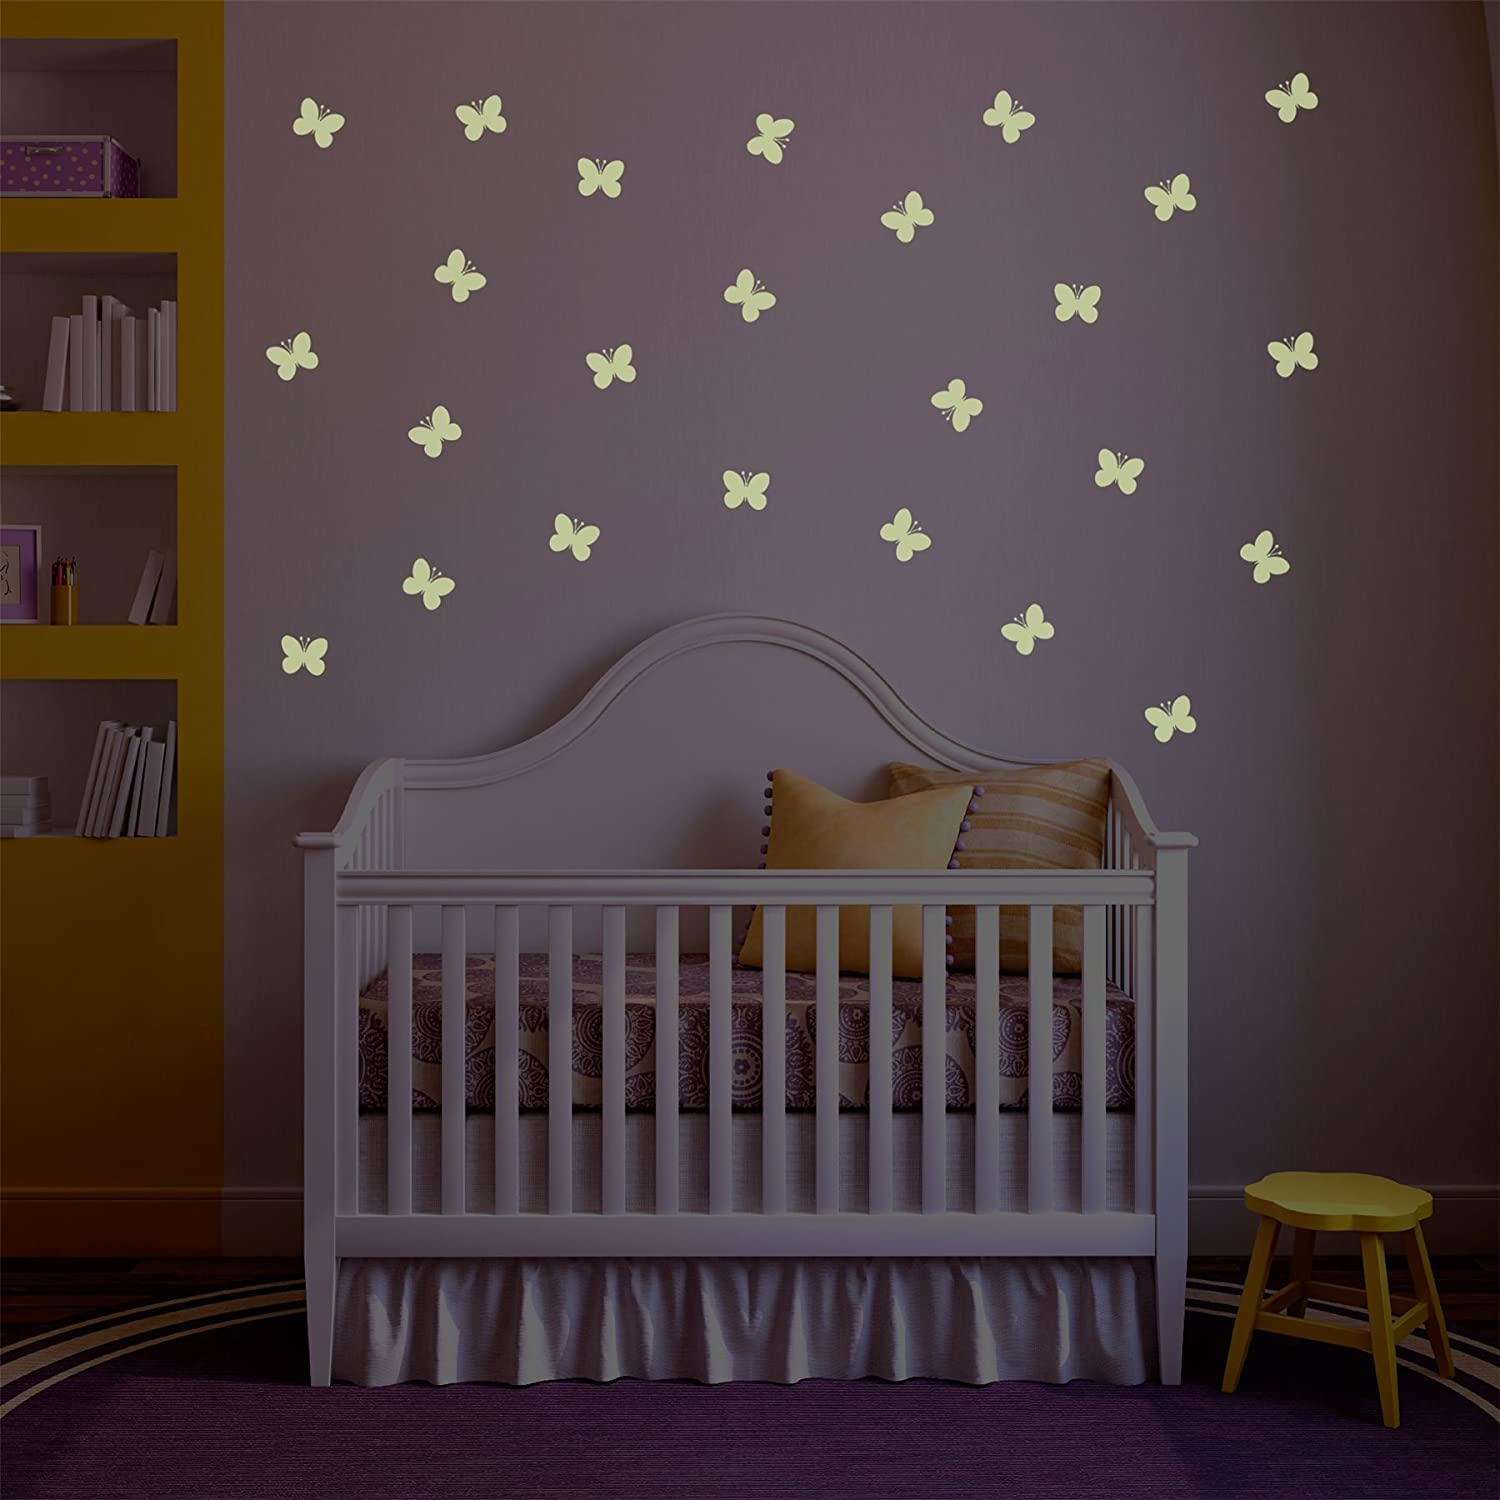 Supertogether Regular Repositionable Glow in the Dark Butterfly Kids Bedroom Wall Stickers, Pack of 25, White GLOW-BUTTERFLIES-REG